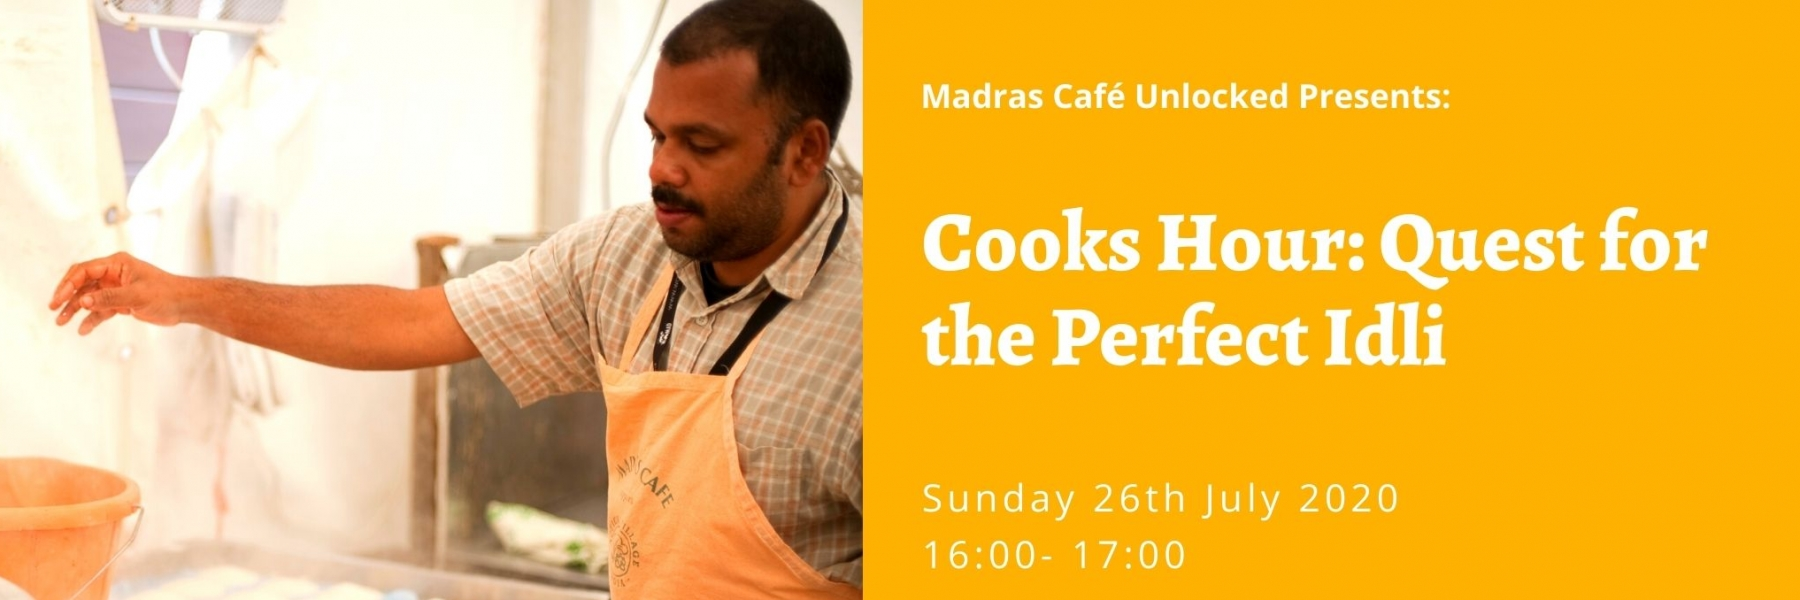 Madras Cafe Unlocked 2020: Cooks Hour: Quest for the Perfect Idli